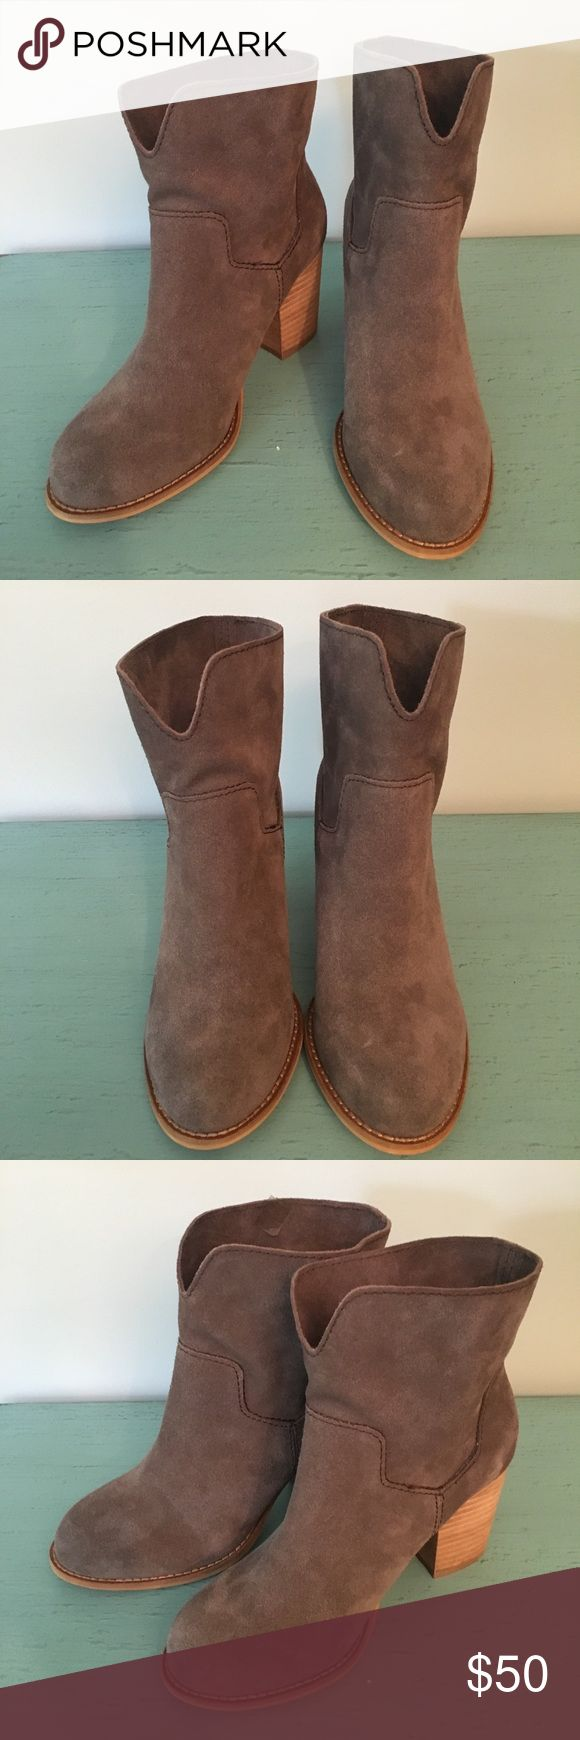 """Splendid Suede Booties EUC! Suede booties are the perfect shoe for a cool spring night. 3"""" block heel. Mushroom color. So comfortable!! Splendid Shoes Ankle Boots & Booties"""